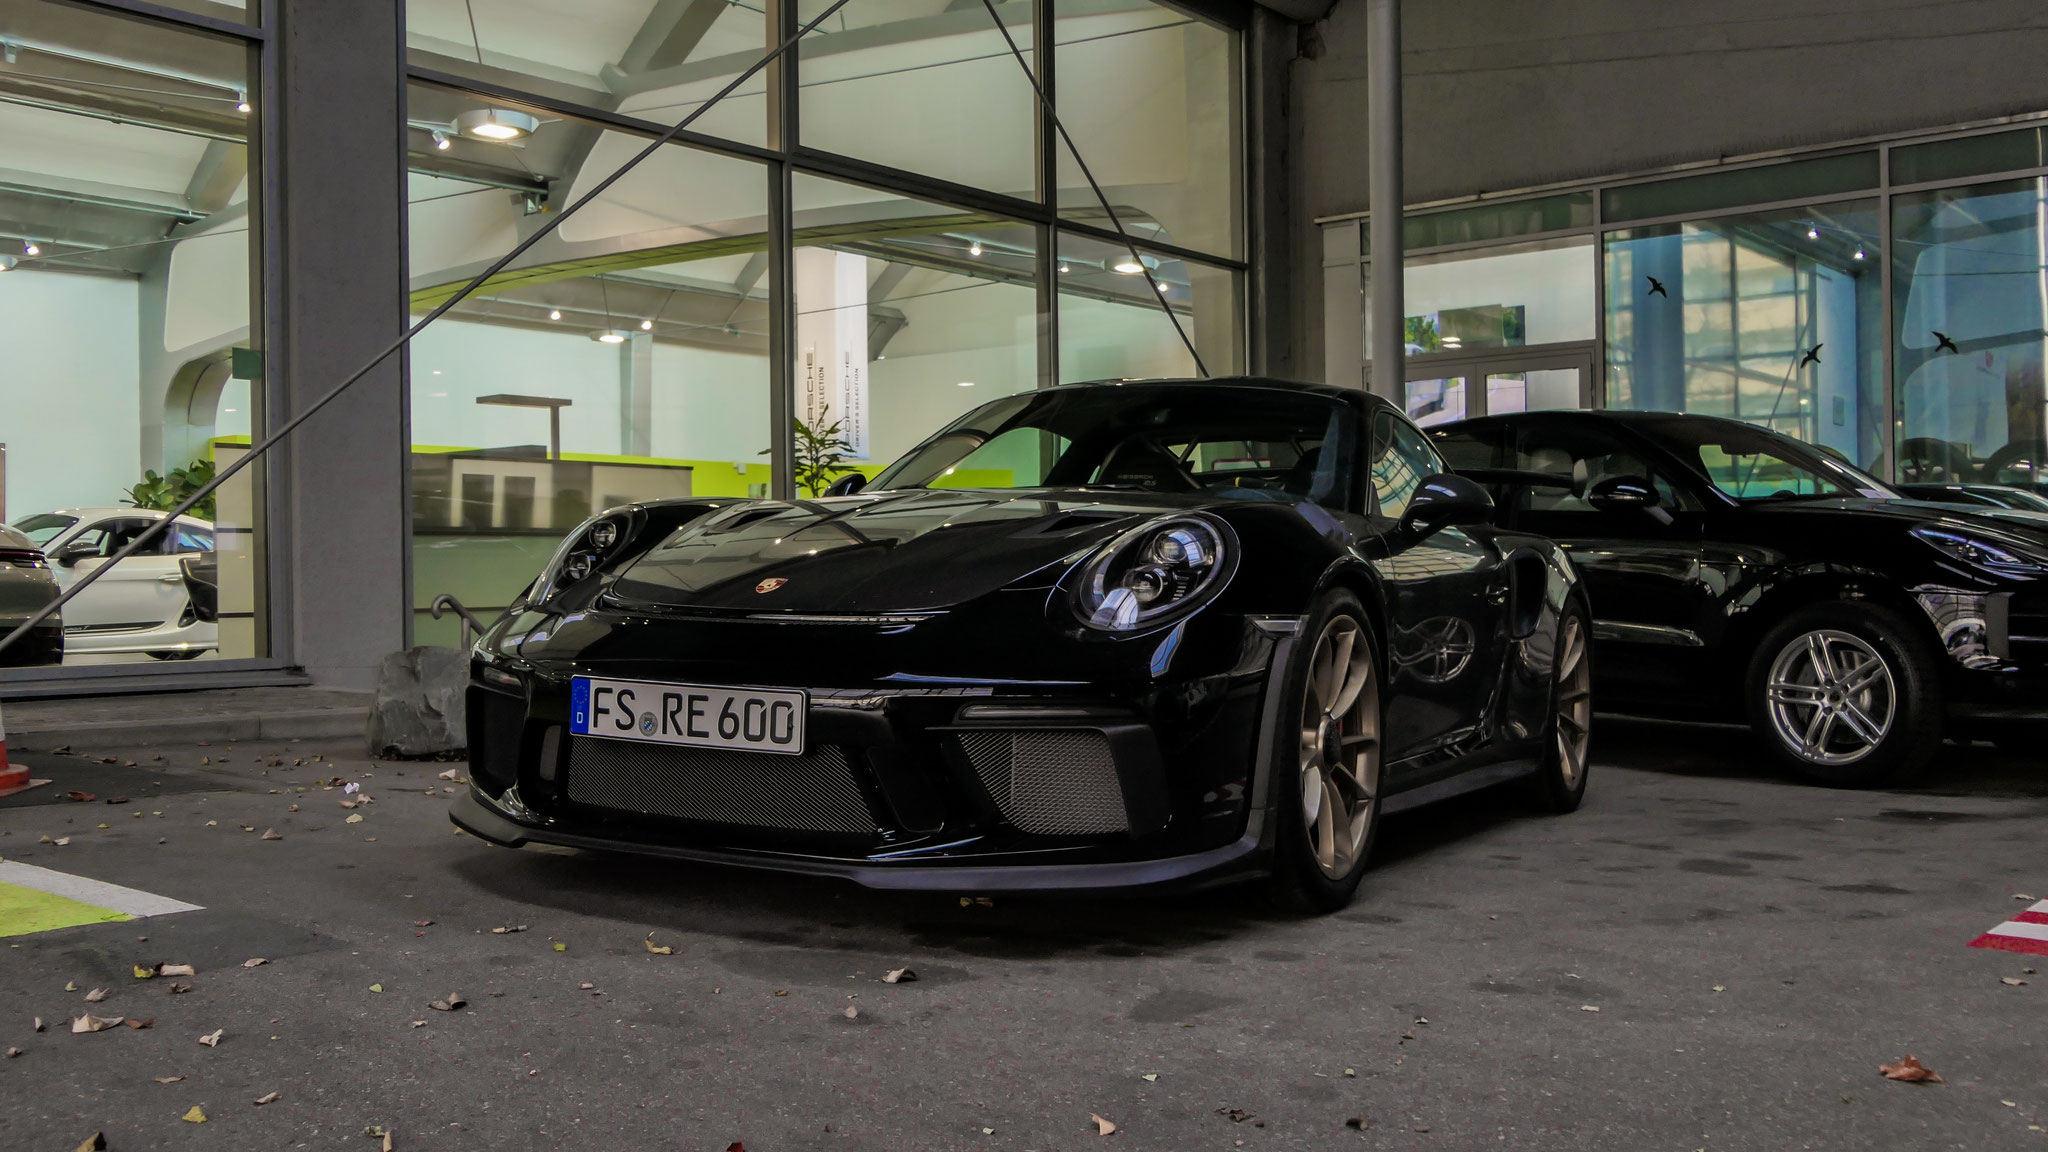 Porsche 911 991.2 GT3 RS - FS-RE-600